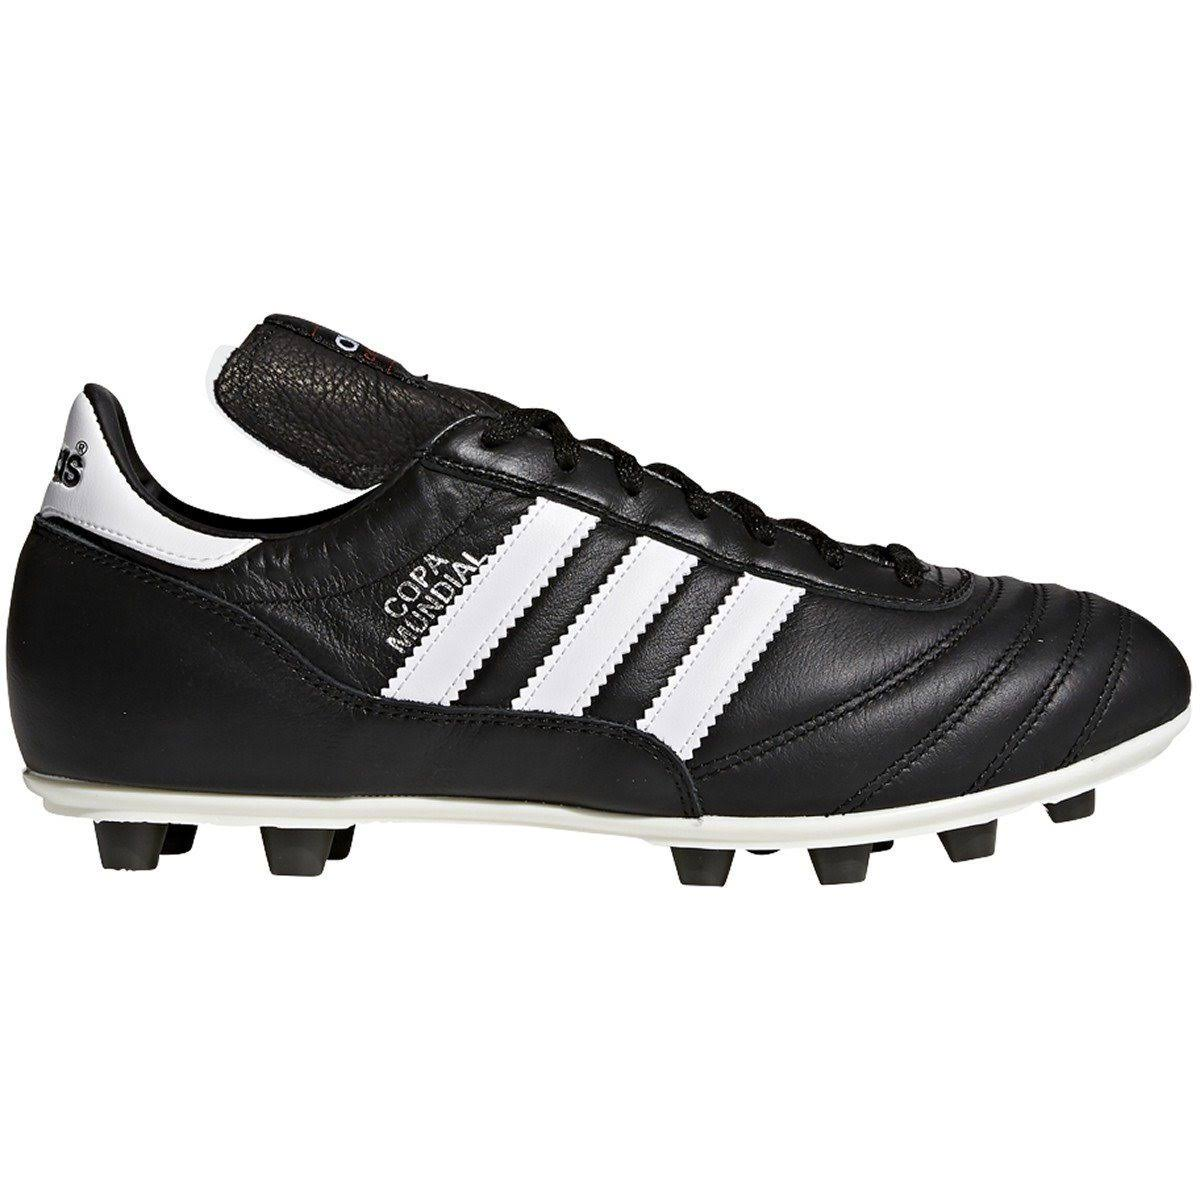 Adidas Mens Copa Mundial Firm Ground Soccer Cleats - Black, 13 US